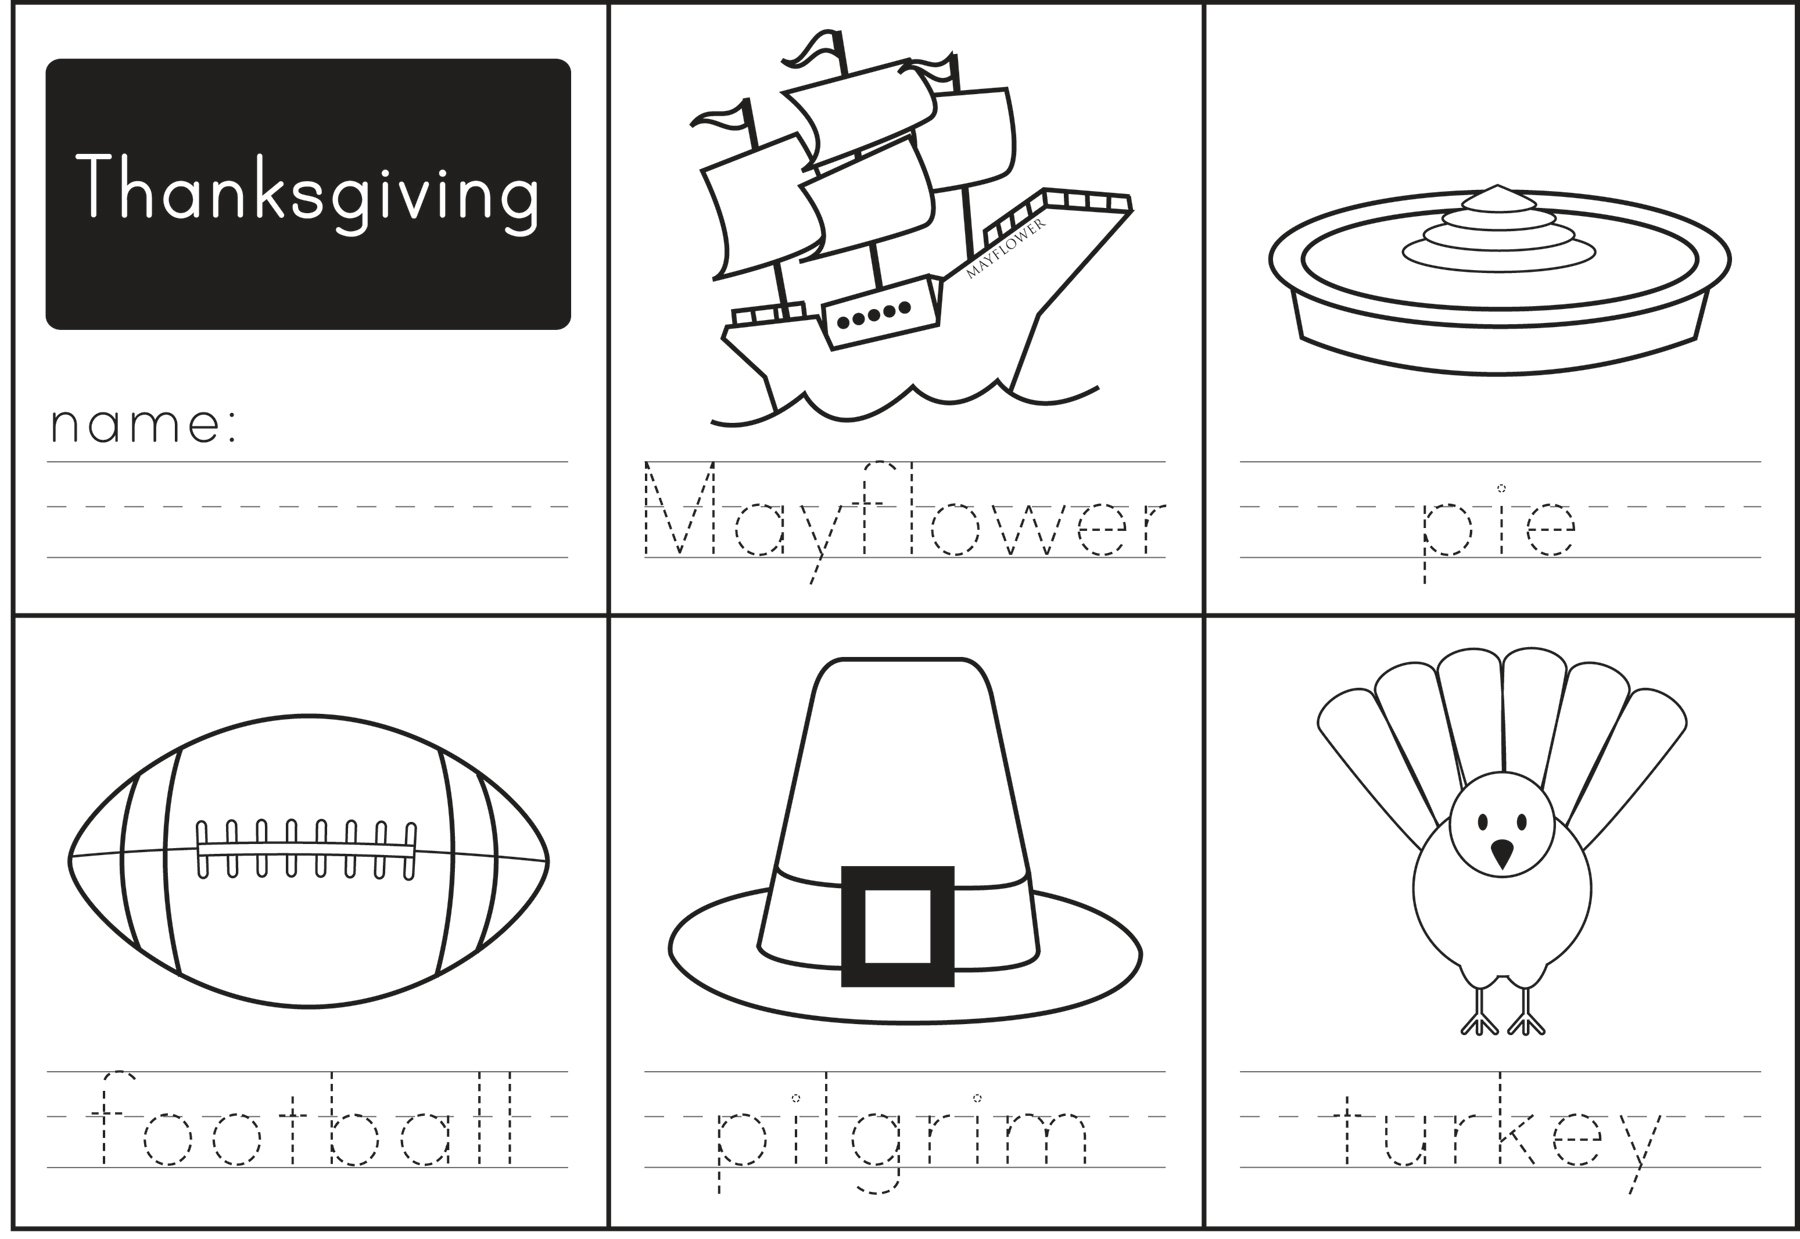 picture regarding Printable Thanksgiving Activities named Thanksgiving Actions - Paging Supermom